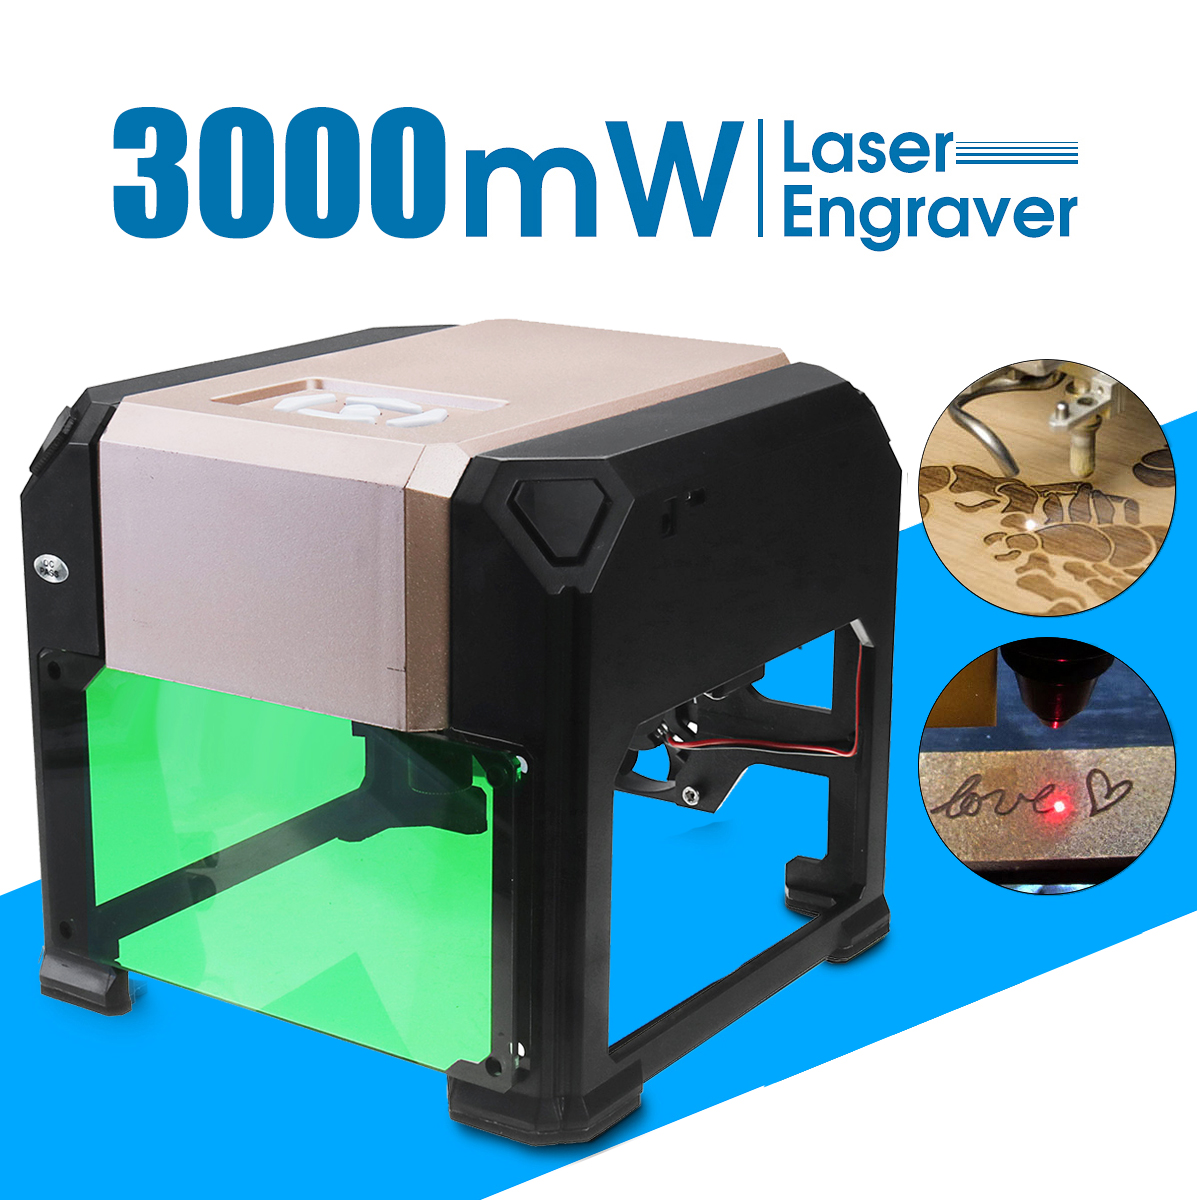 3000mW USB Laser Engraver Printer Cutter Carver DIY Logo Mark Laser Cut Engraving Machine CNC Laser Carving Machine Home Use3000mW USB Laser Engraver Printer Cutter Carver DIY Logo Mark Laser Cut Engraving Machine CNC Laser Carving Machine Home Use